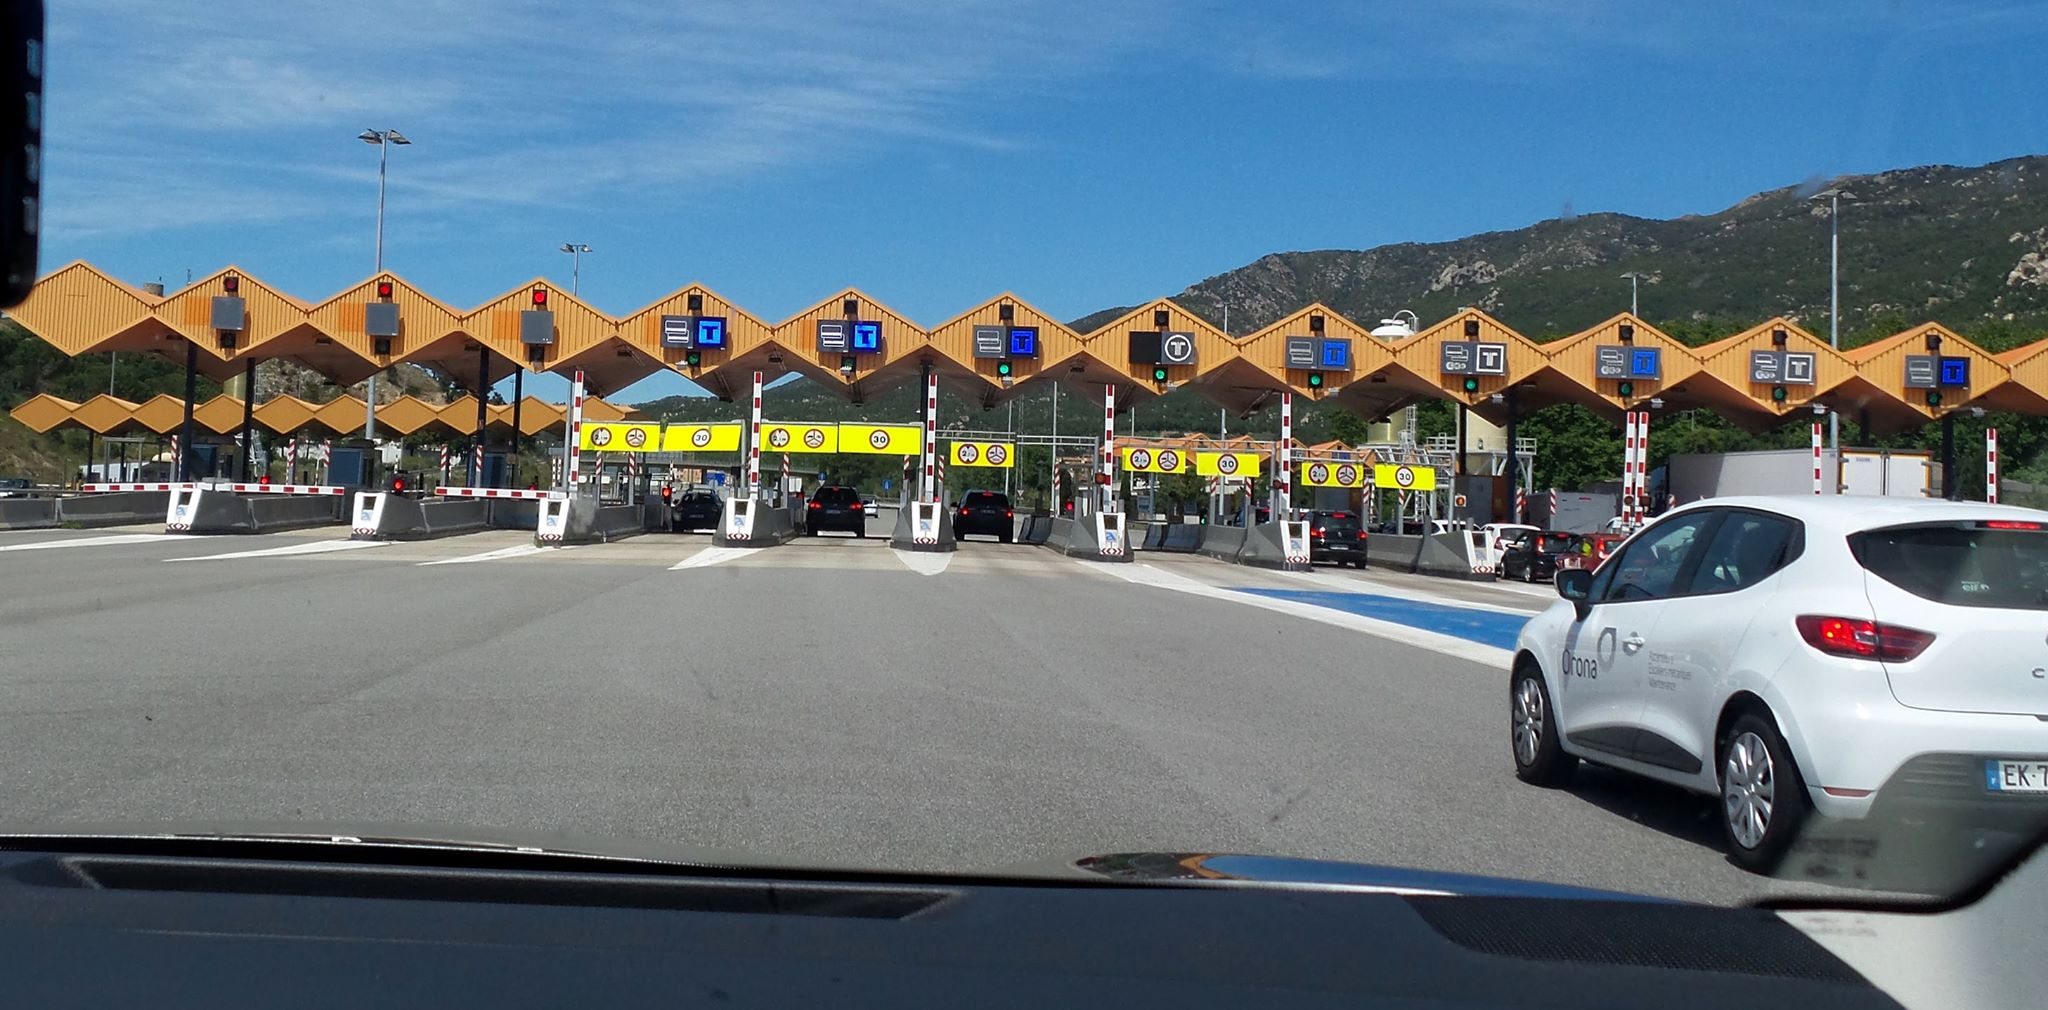 Almost all the highways through Spain, France, and Italy are toll roads, and can get expensive quickly. But at least they take credit cards.